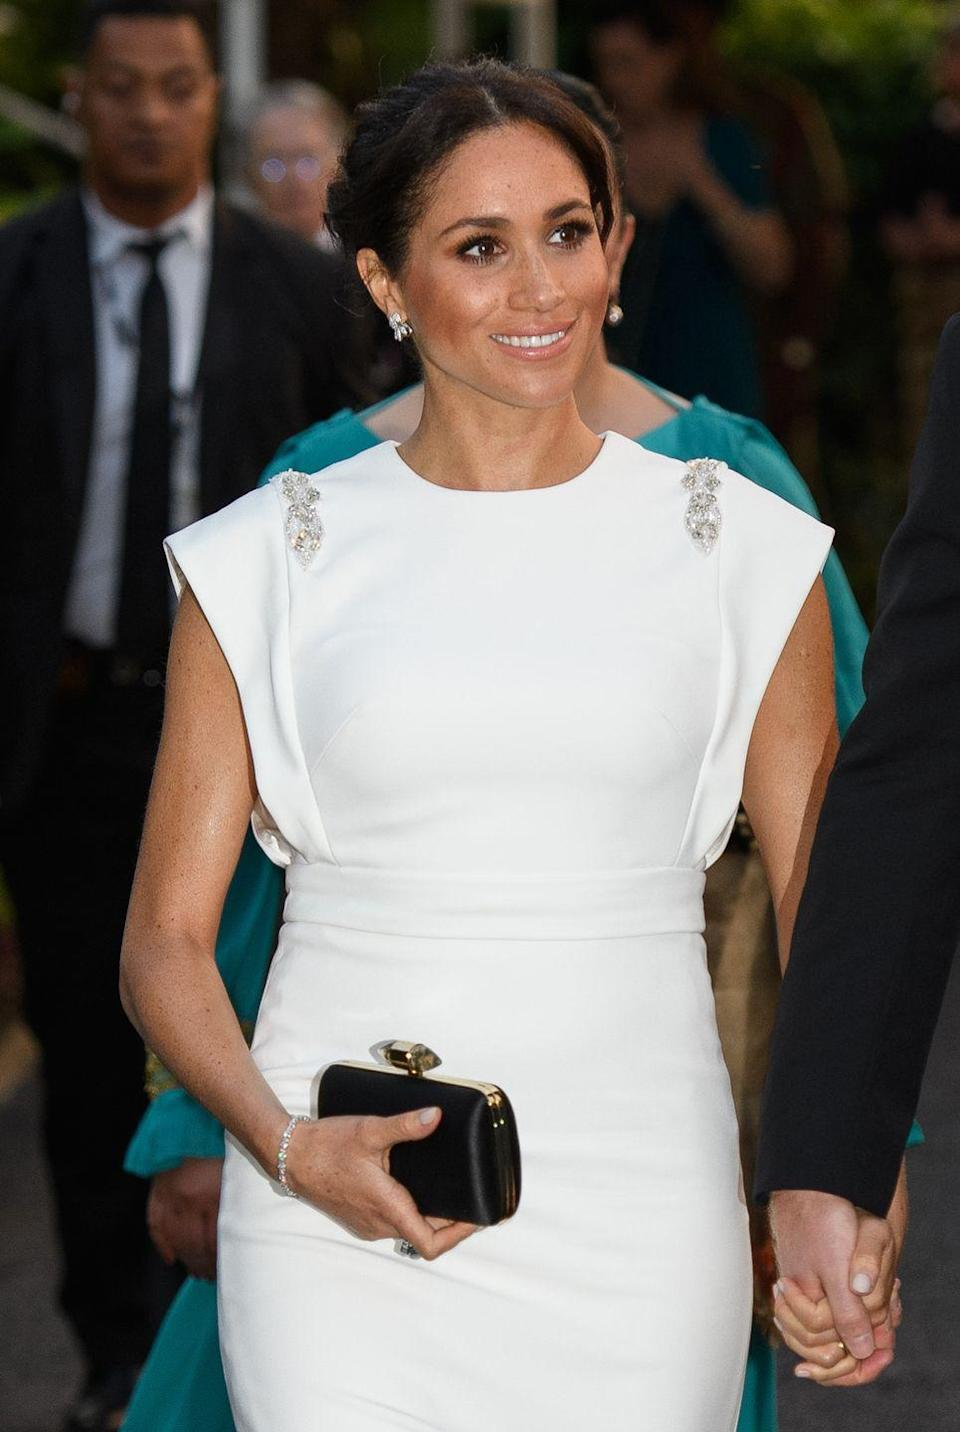 "<p>During the Prince Harry and Meghan's Royal Tour to Australia, Fiji, Tonga, and New Zealand, the Duchess wore her late mother-in-law's exquisite aquamarine ring in quiet tribute. <em><a href=""https://www.townandcountrymag.com/style/jewelry-and-watches/a24216489/meghan-markle-princess-diana-aquamarine-cocktail-ring-tonga/"" rel=""nofollow noopener"" target=""_blank"" data-ylk=""slk:Town & Country"" class=""link rapid-noclick-resp"">Town & Country</a> </em>reports the ring was part of a set that Diana wore many times.</p>"